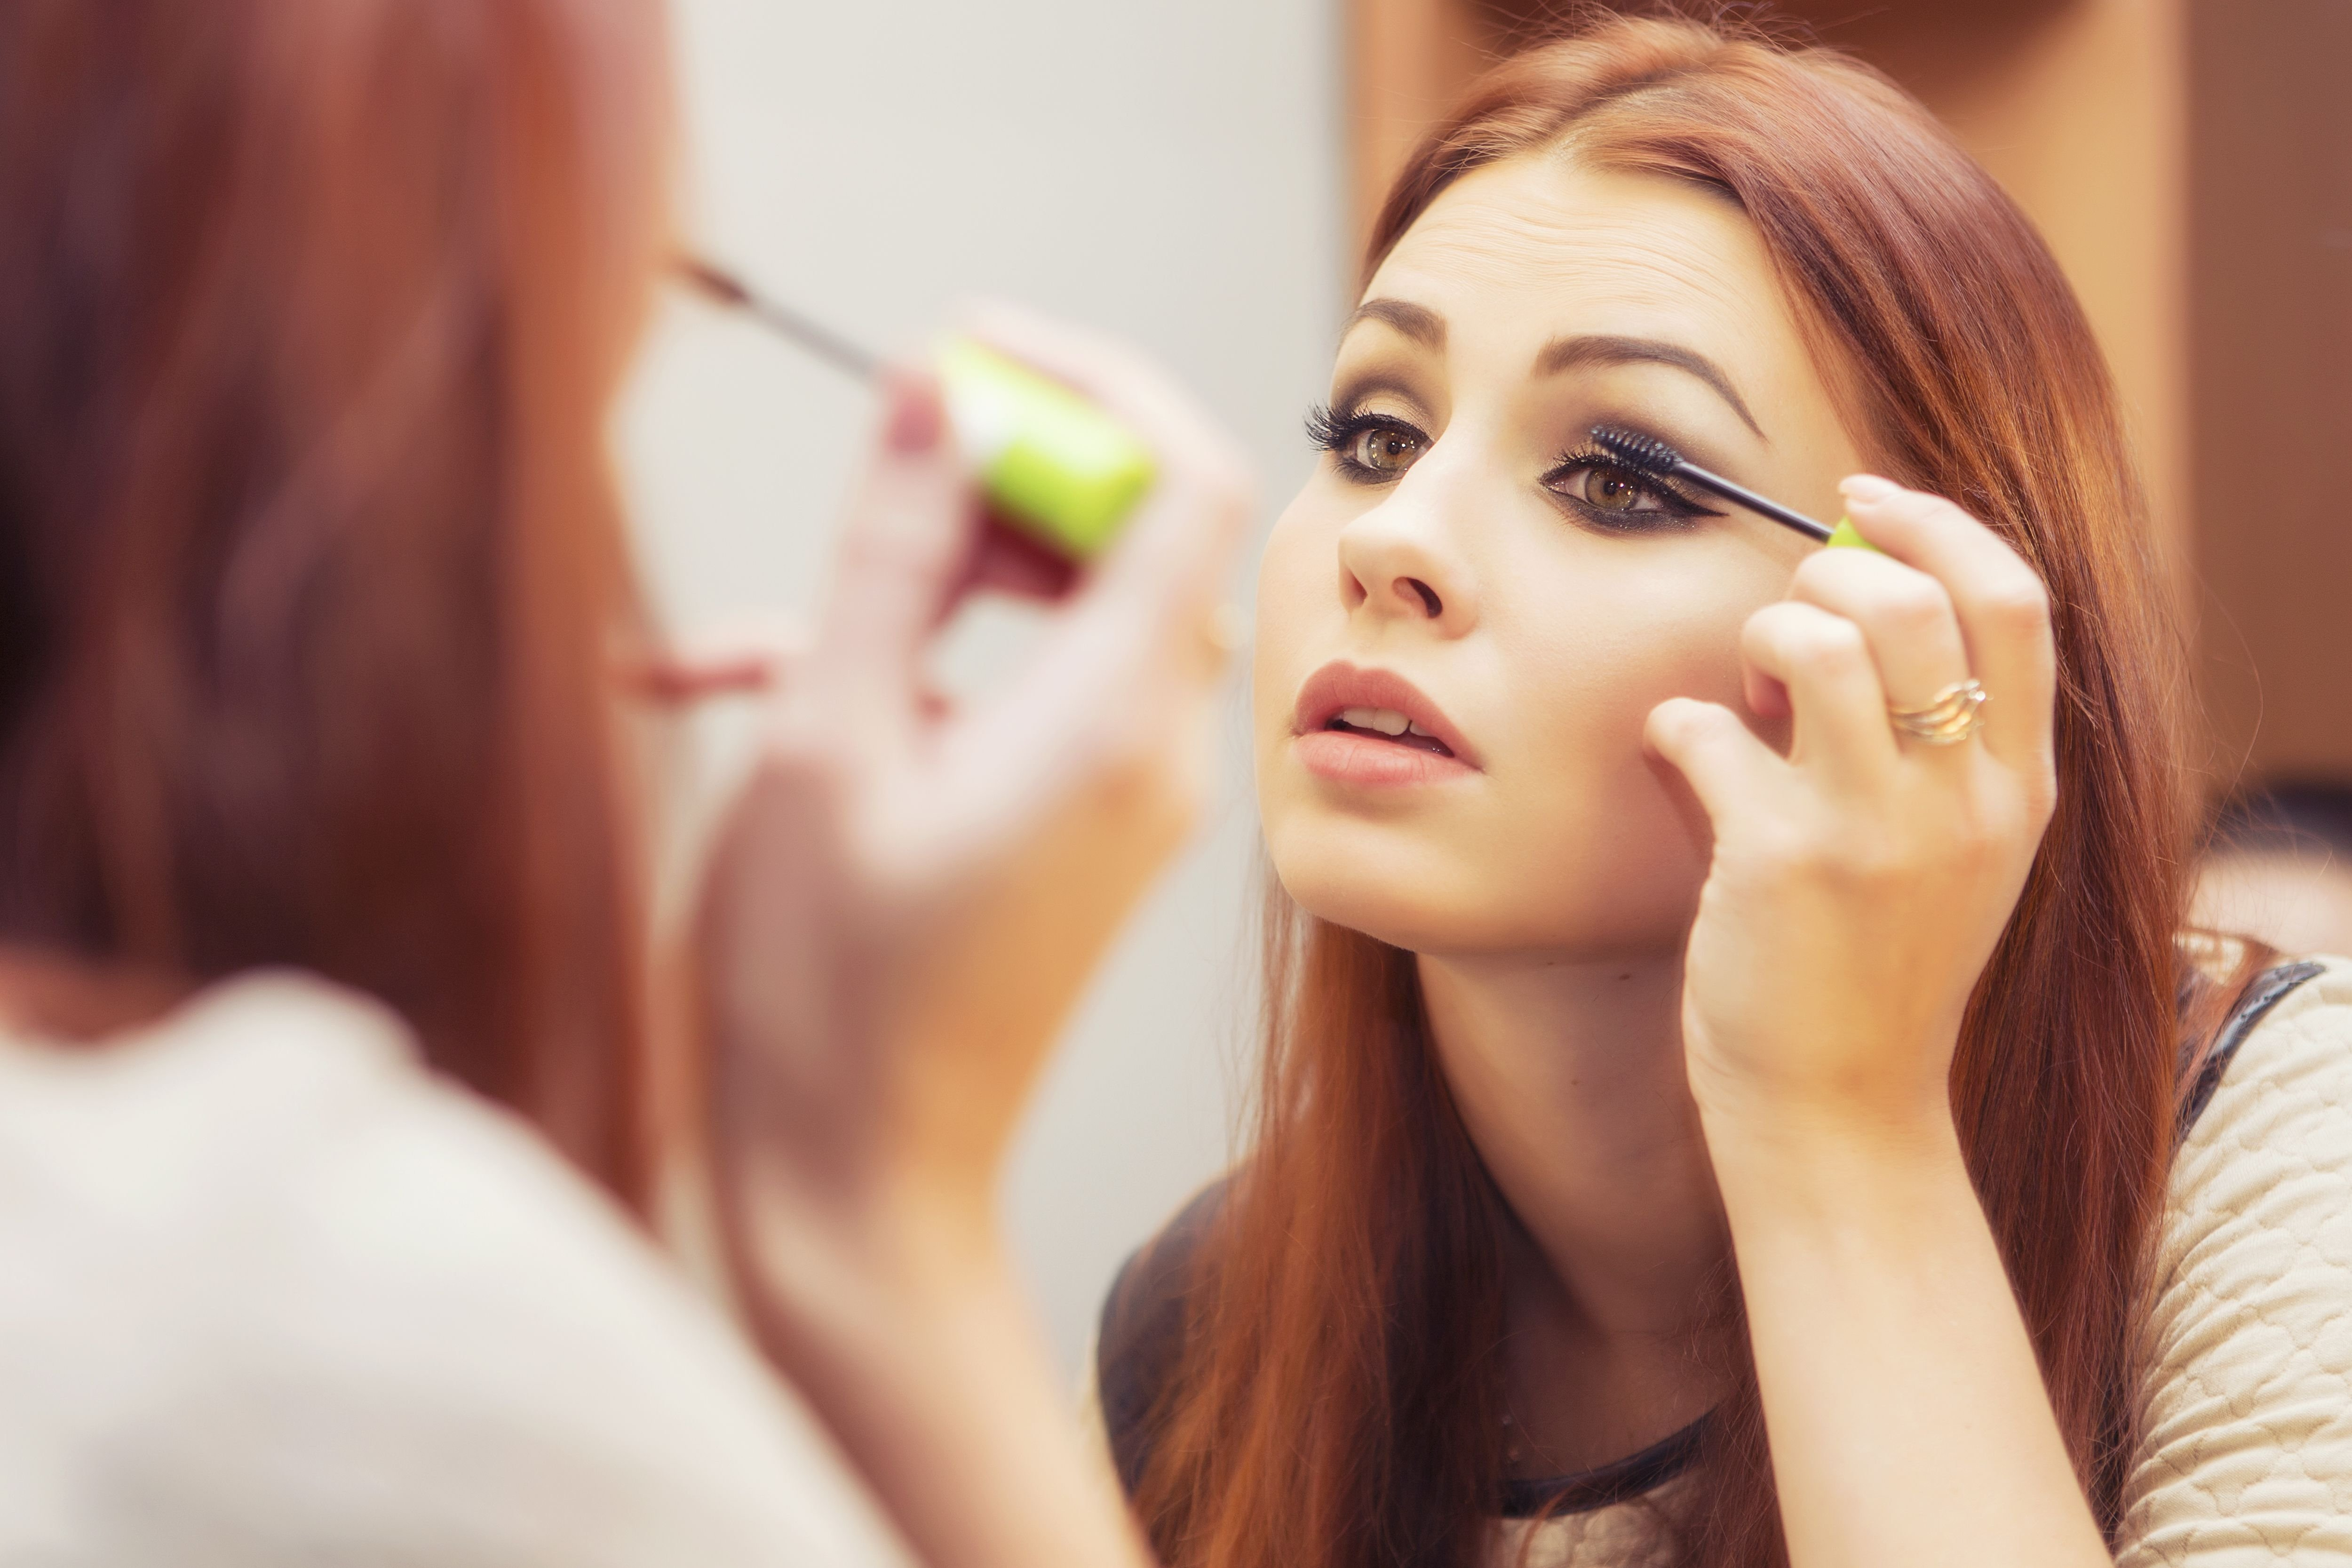 A woman applying make up in front of a mirror. | Source: Shutterstock